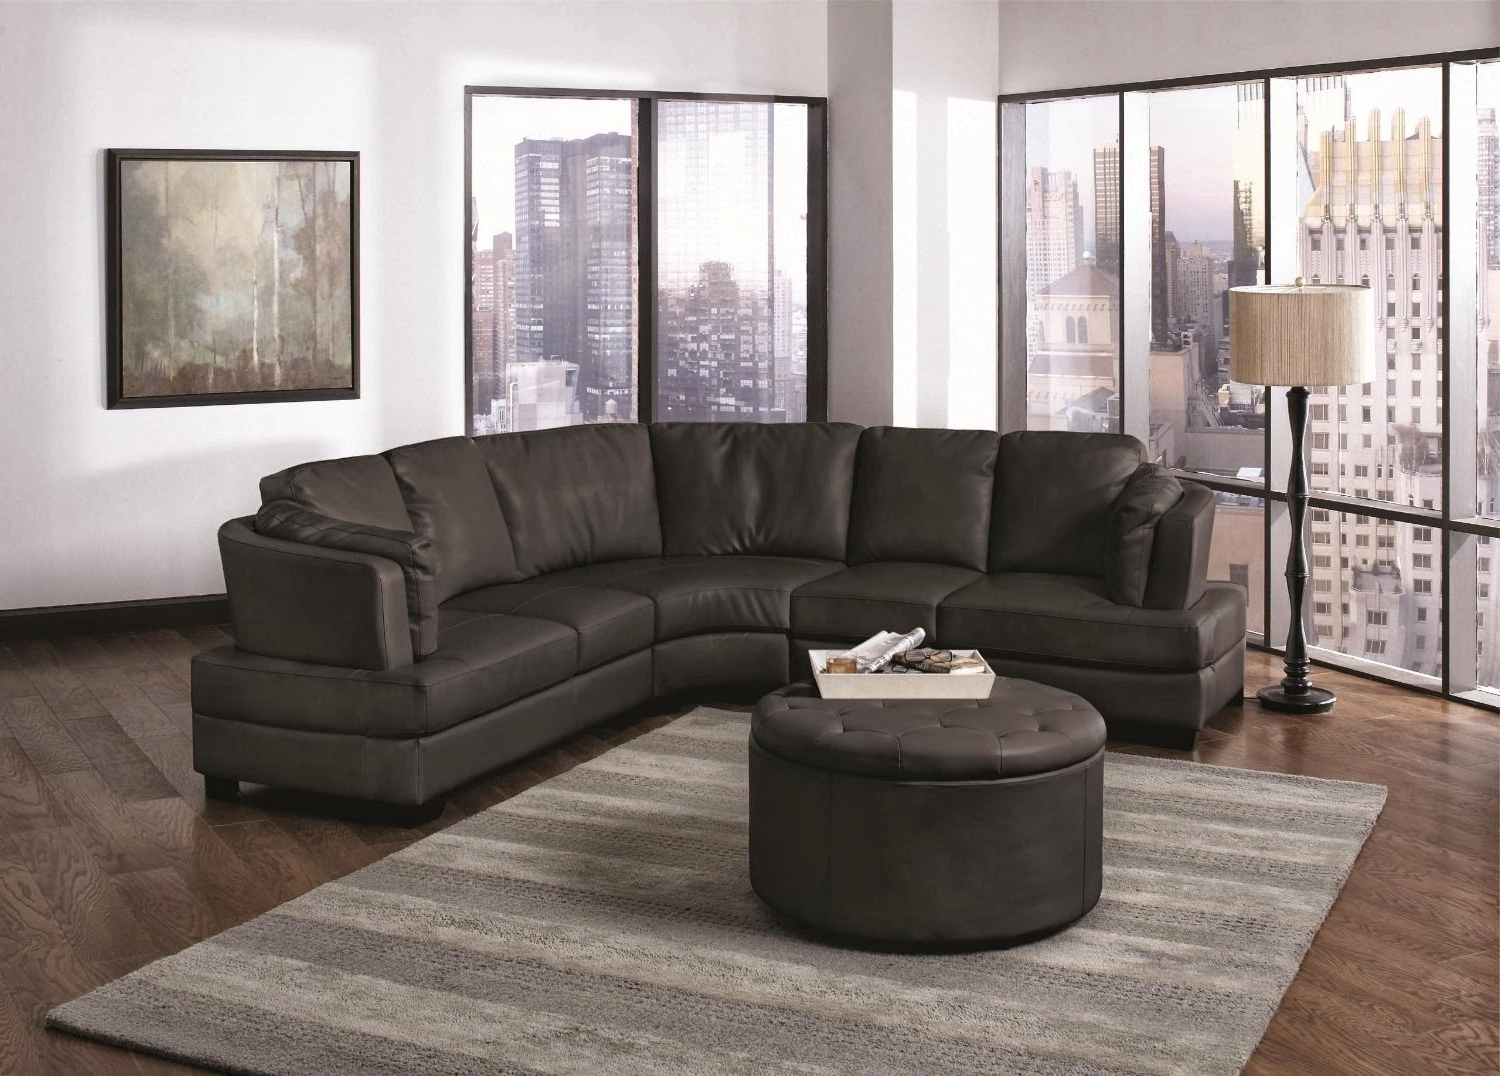 Sectional Sofas Decorating Pertaining To Best And Newest Ideas For Decorate With A Curved Sectional Sofa — Cabinets, Beds (View 13 of 20)